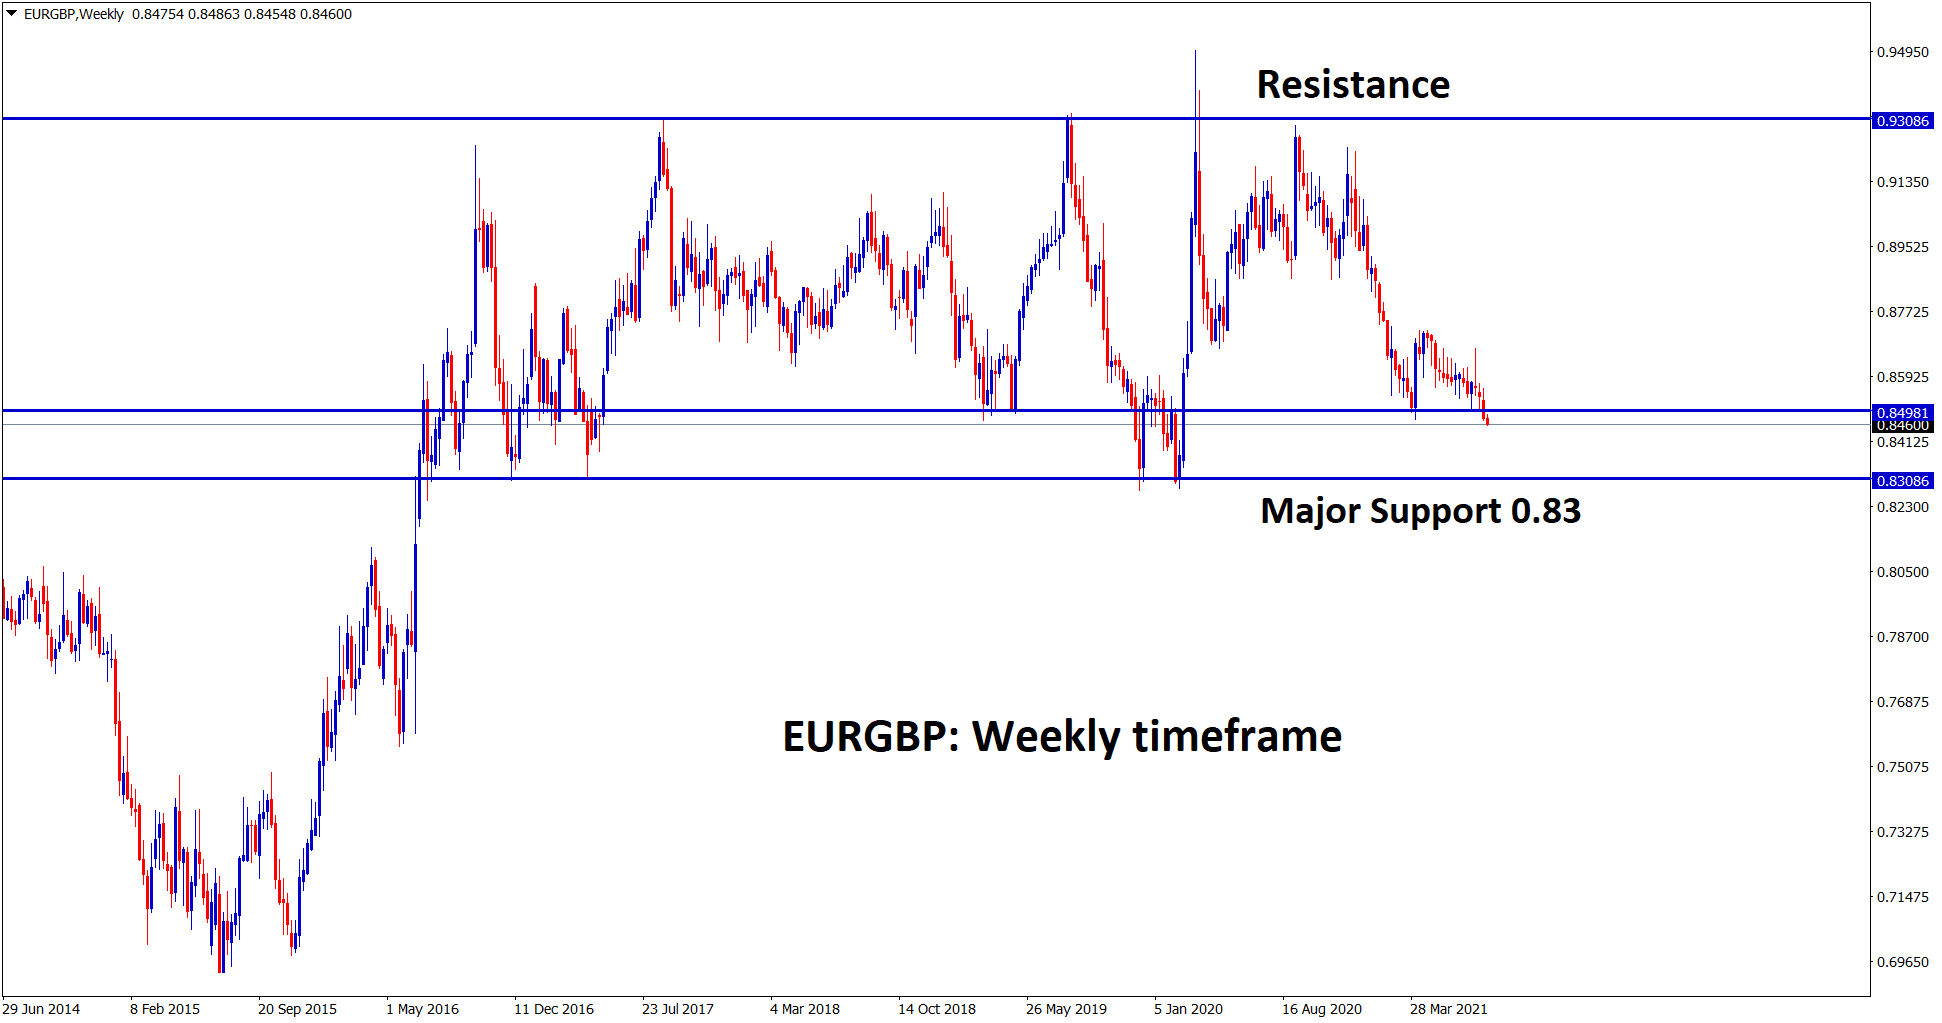 EURGBP broken the recent support and falling now to the next major support area 0.83